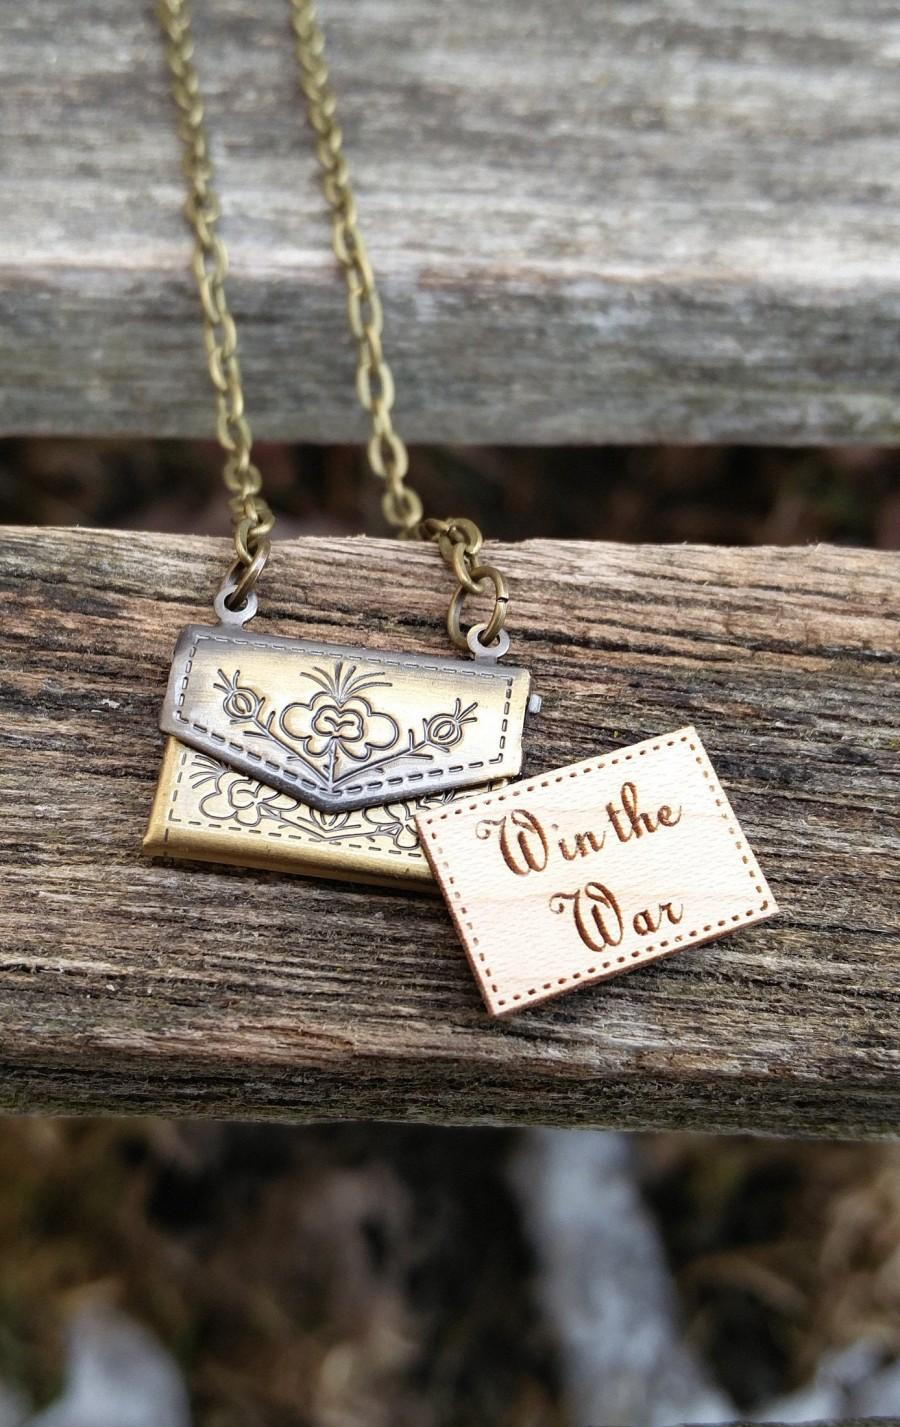 Wedding - Personalized Envelope Locket Necklace. CHOOSE YOUR WORDS. Wedding, Groom Gift, Anniversary, Birthday, Valentine.